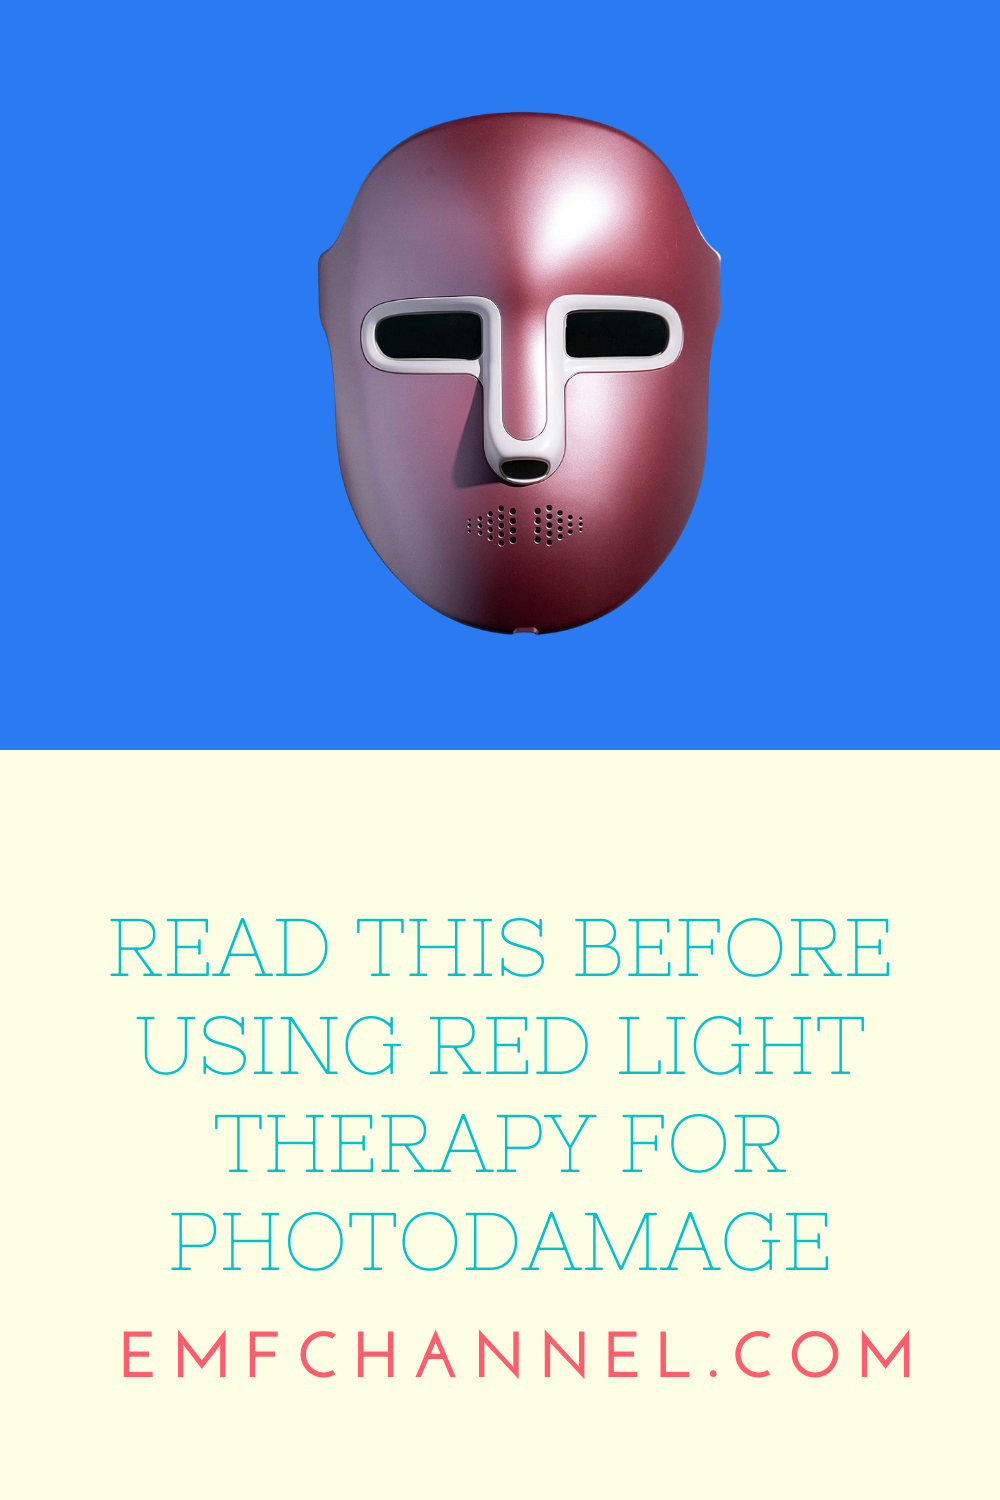 Read This Before Using Red Light Therapy for Photodamage